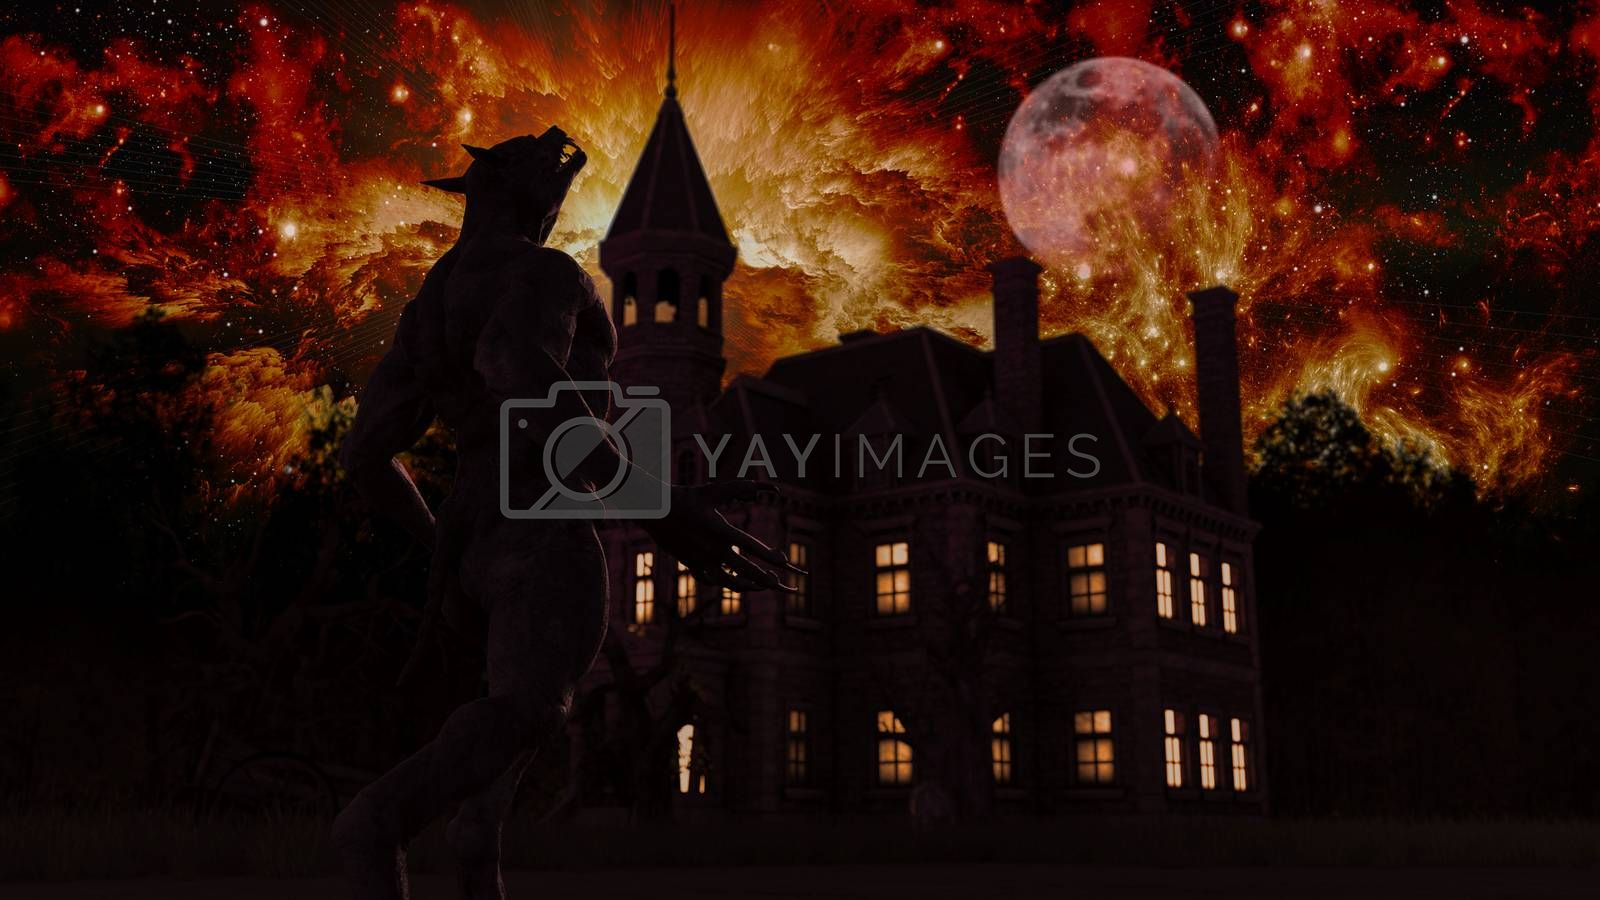 Illustration of a werewolf during the full moon near a house in the creepy forest - 3d rendering